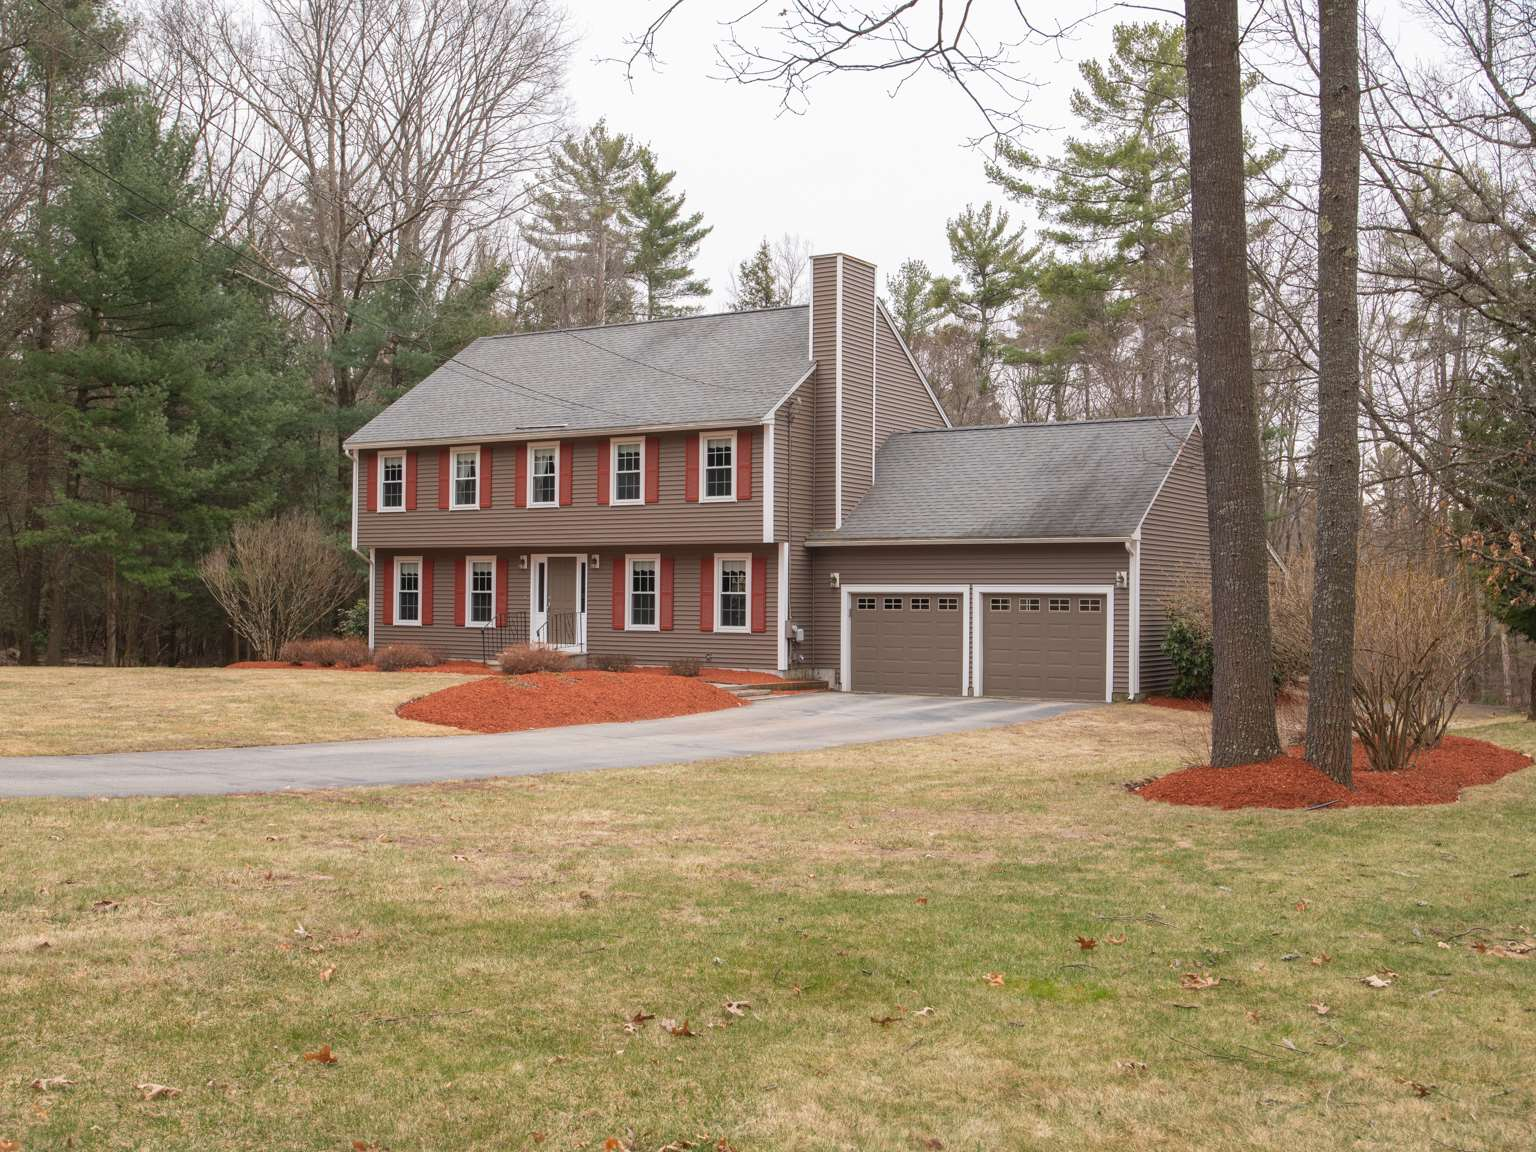 MLS 4799516: 5 Muscovy Drive, Litchfield NH